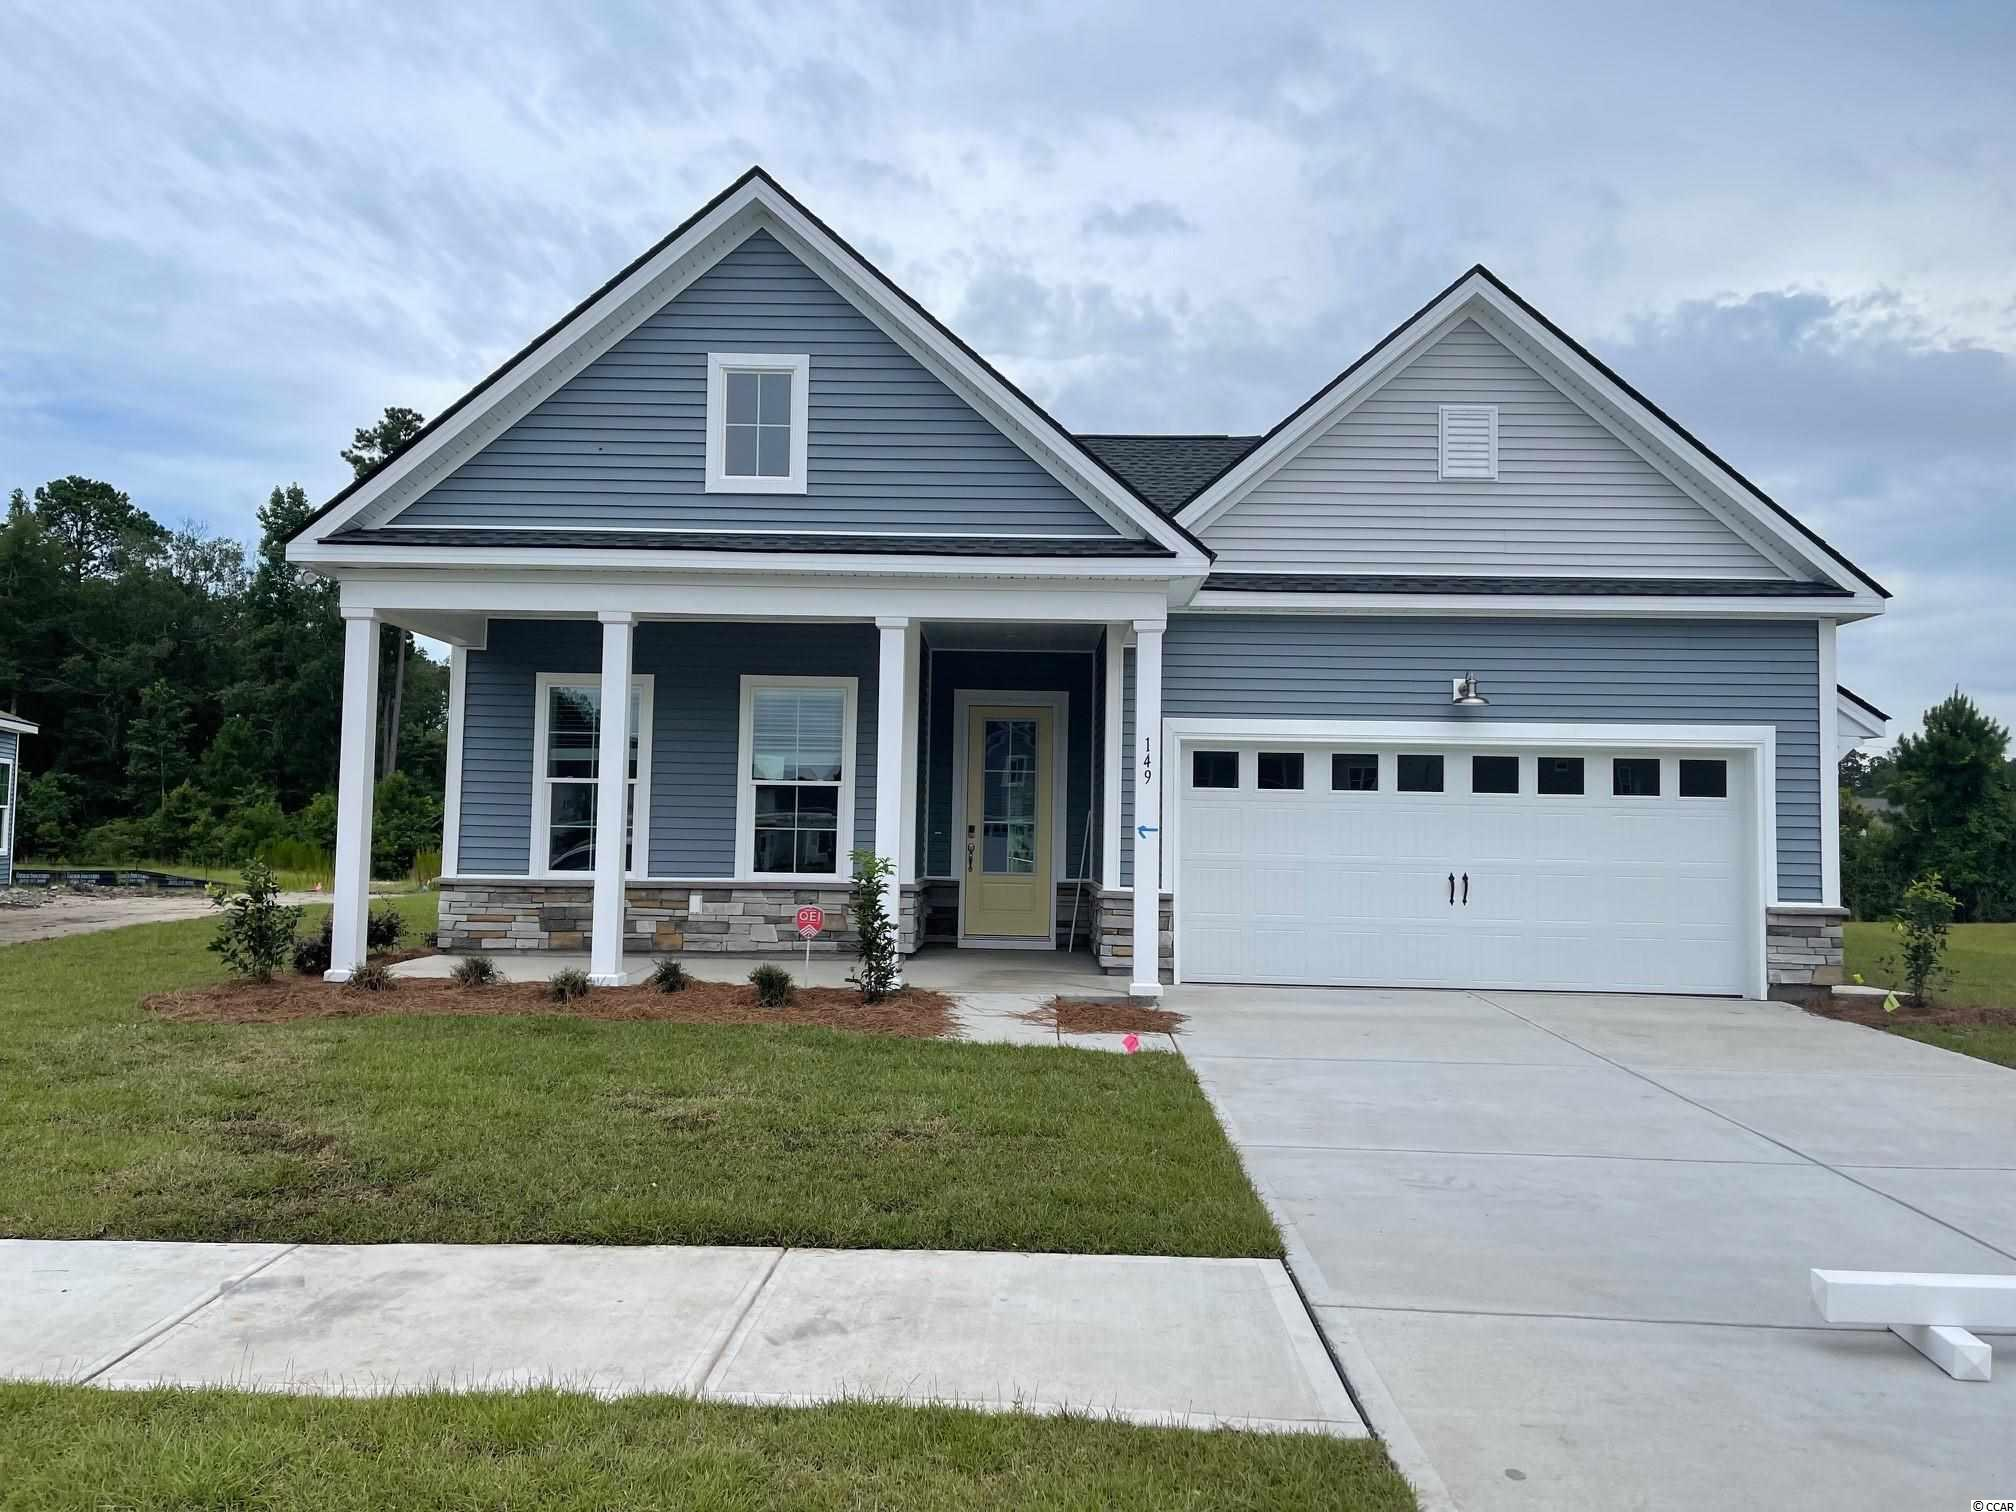 EXCITING NEW COMMUNITY! Wren Bay boasts over six acres of pristine ponds, 2.5 acres of wetlands, and 2.8 acres of green space. The resort style swimming pool will offer a sundeck, bath house, and outdoor gathering space. Easy access to everything you need right outside your door! We are just 5 miles from the crisp blue waters of the Atlantic Ocean, 3 miles to Marshwalk, and just minutes from retail and grocery shopping. This Madison home offers an open concept with soaring 10ft ceilings, upgraded kitchen, hardwood flooring, Rear covered Porch, double door entry into the Master, and double sinks. The garage is a wood workers dream with a tandem garage, that can be used as a workshop, golf cart bay, or extra storage!